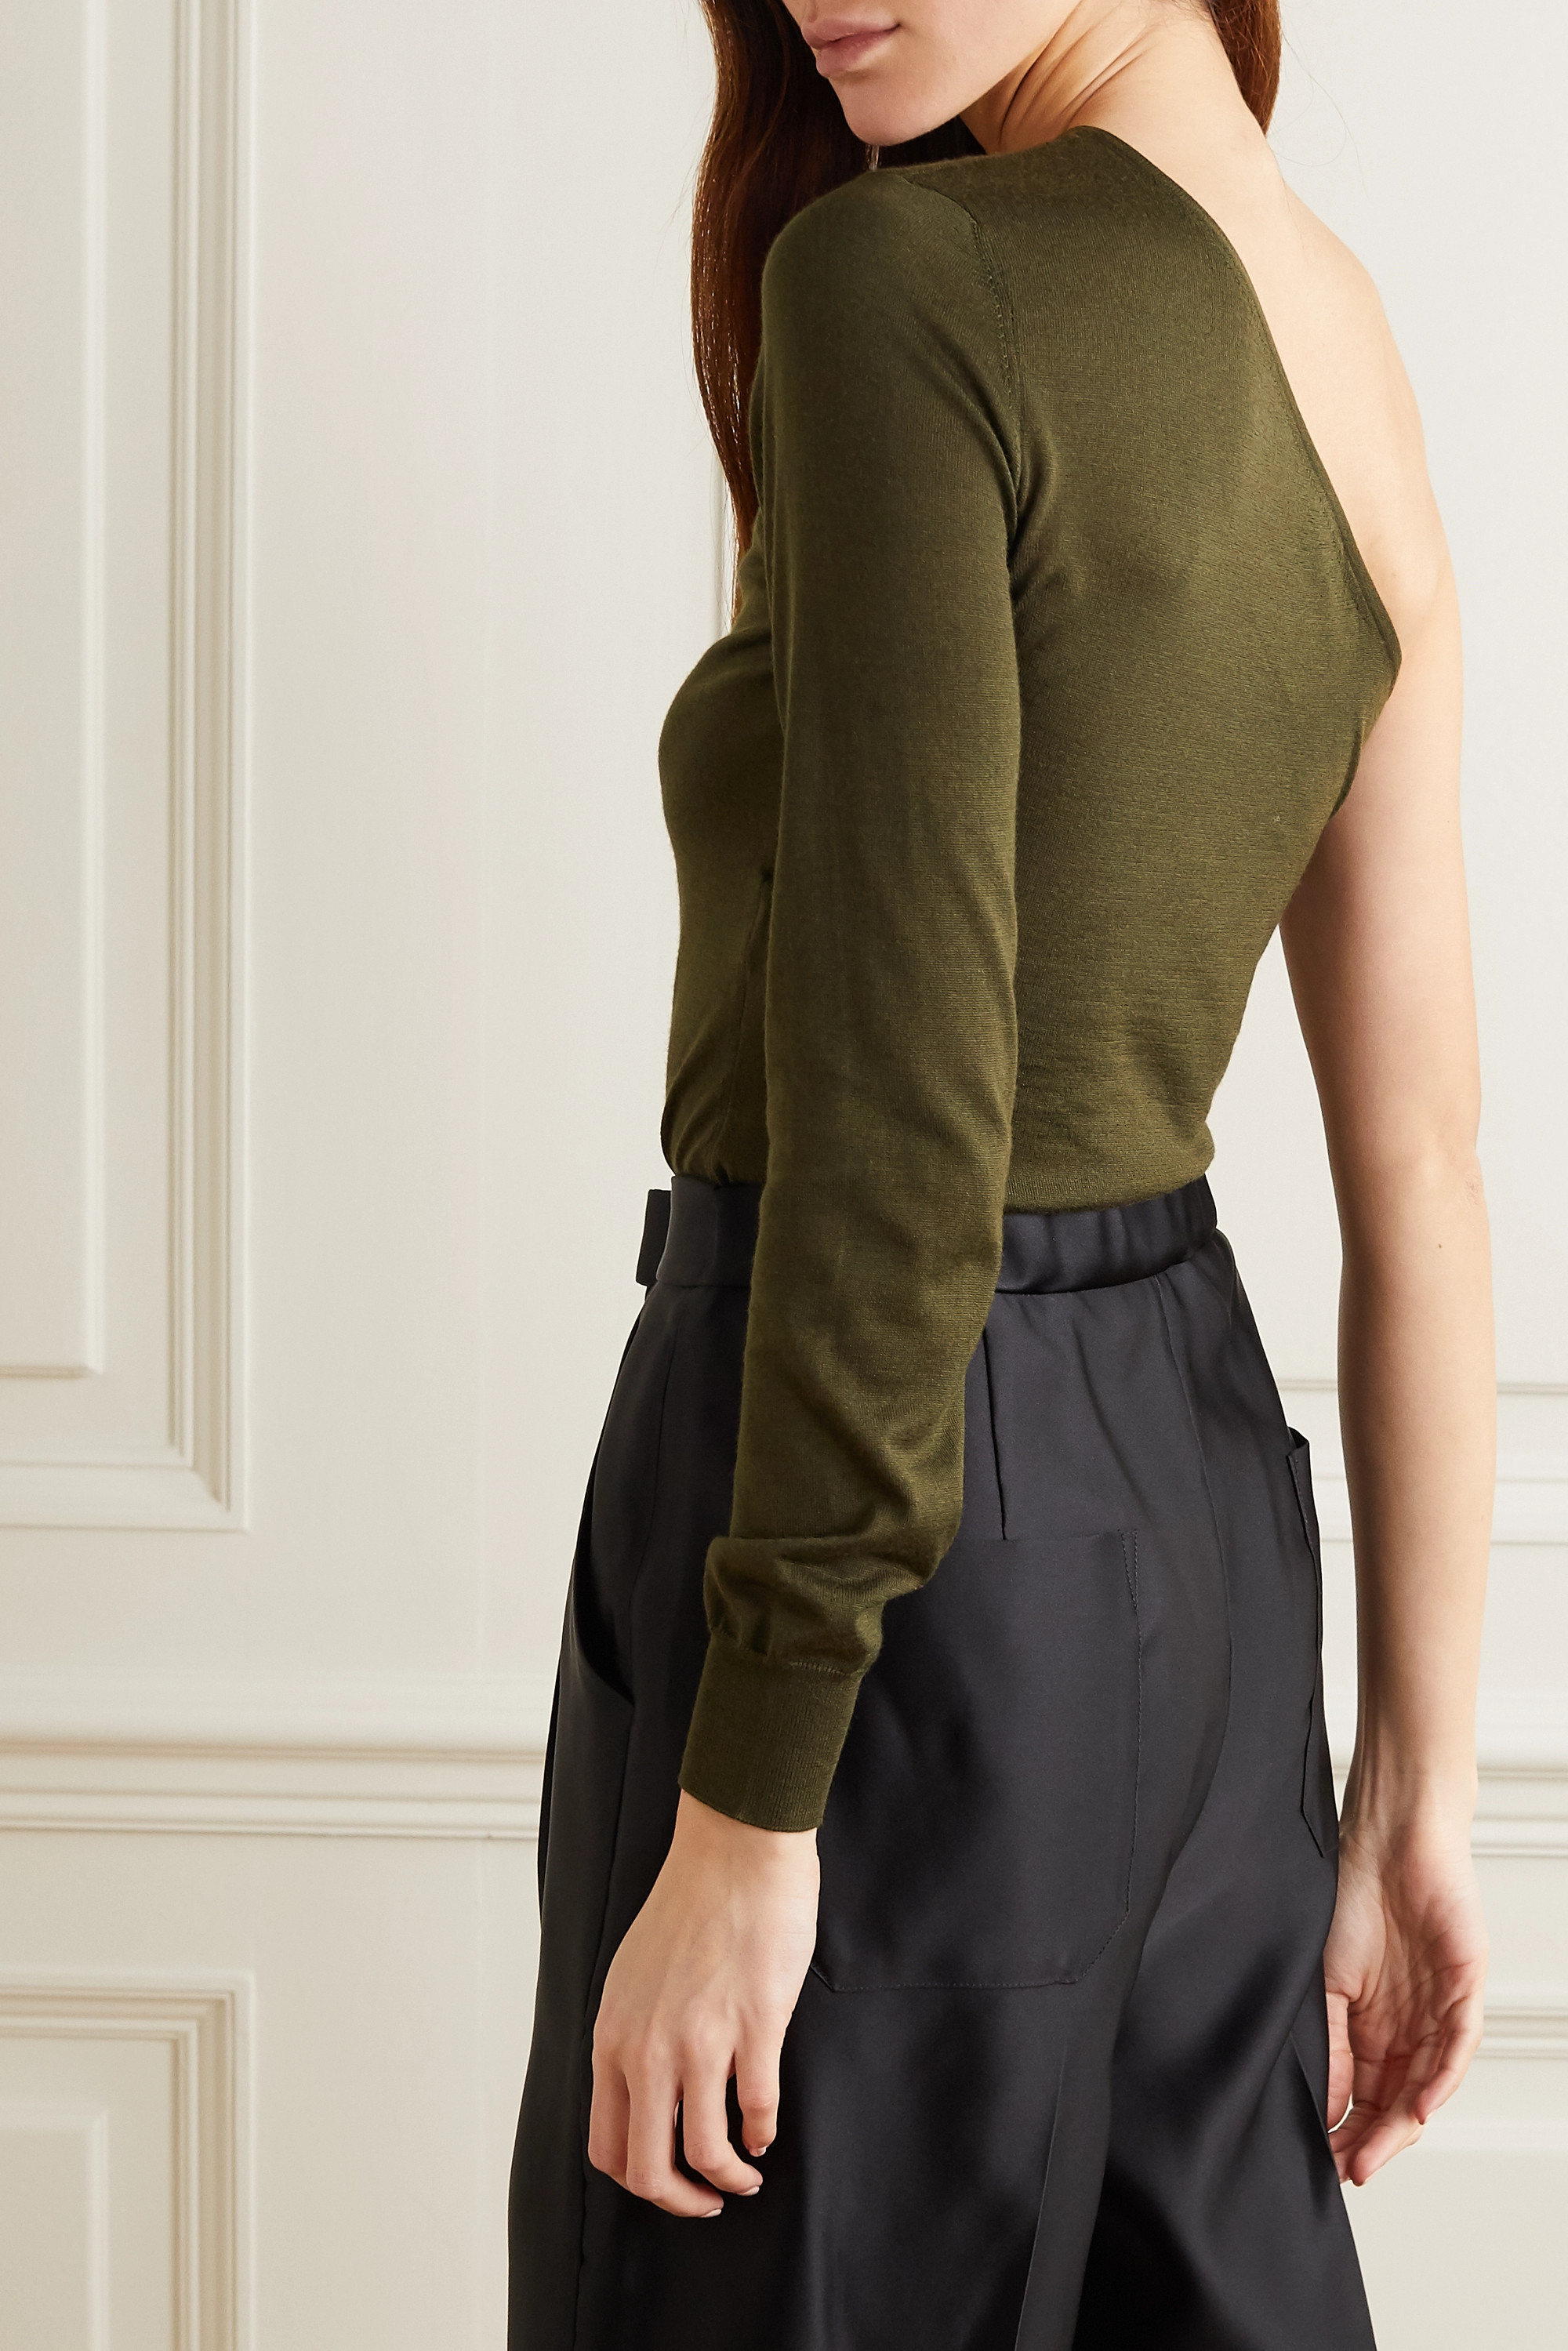 TOM FORD One-sleeve cashmere and silk-blend sweater